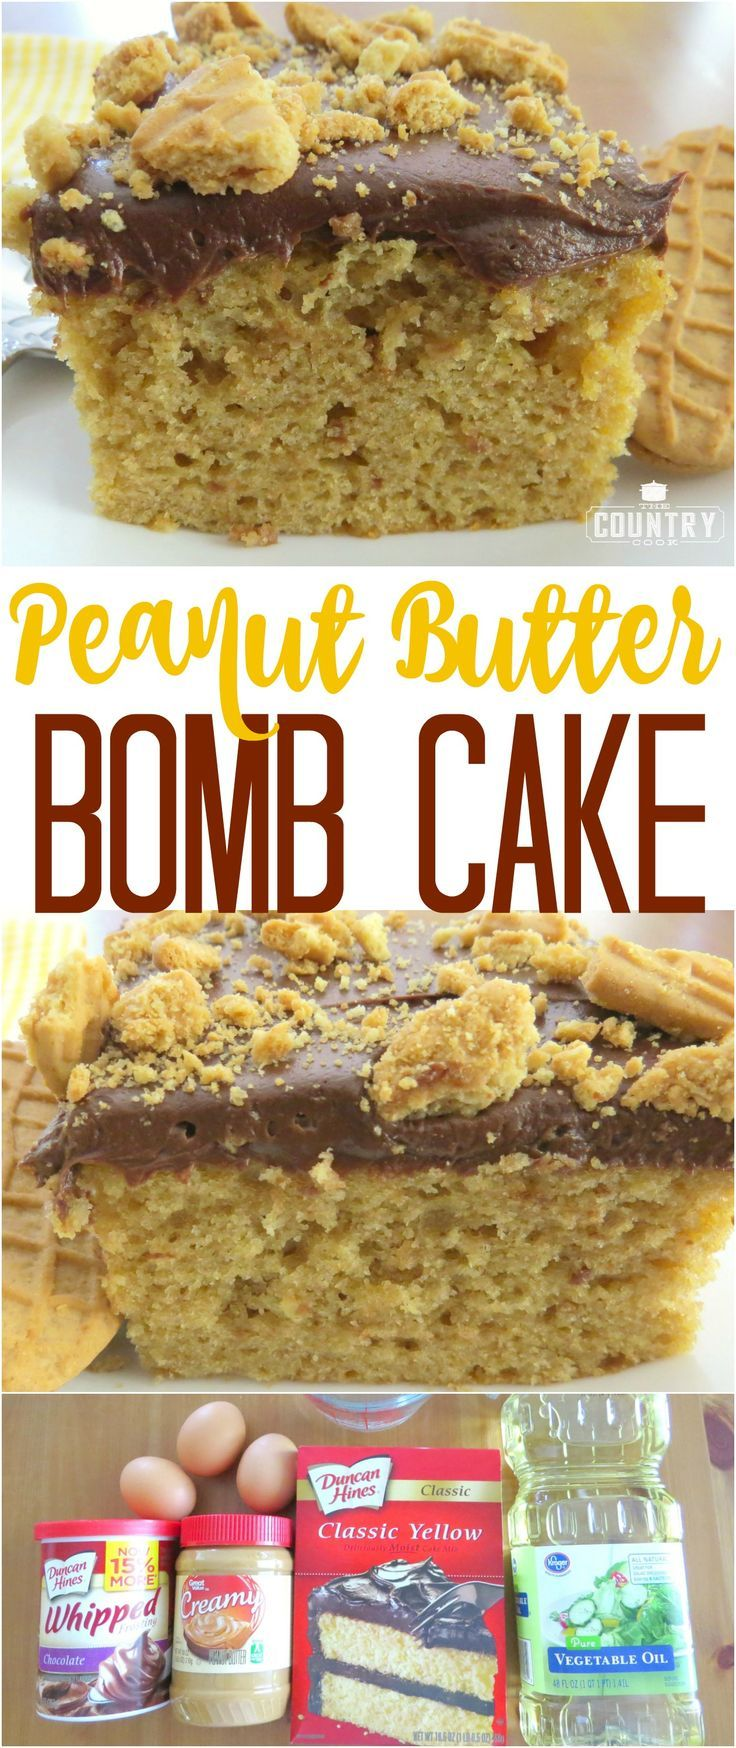 Peanut Butter Bomb Cake recipe from The Country Cook